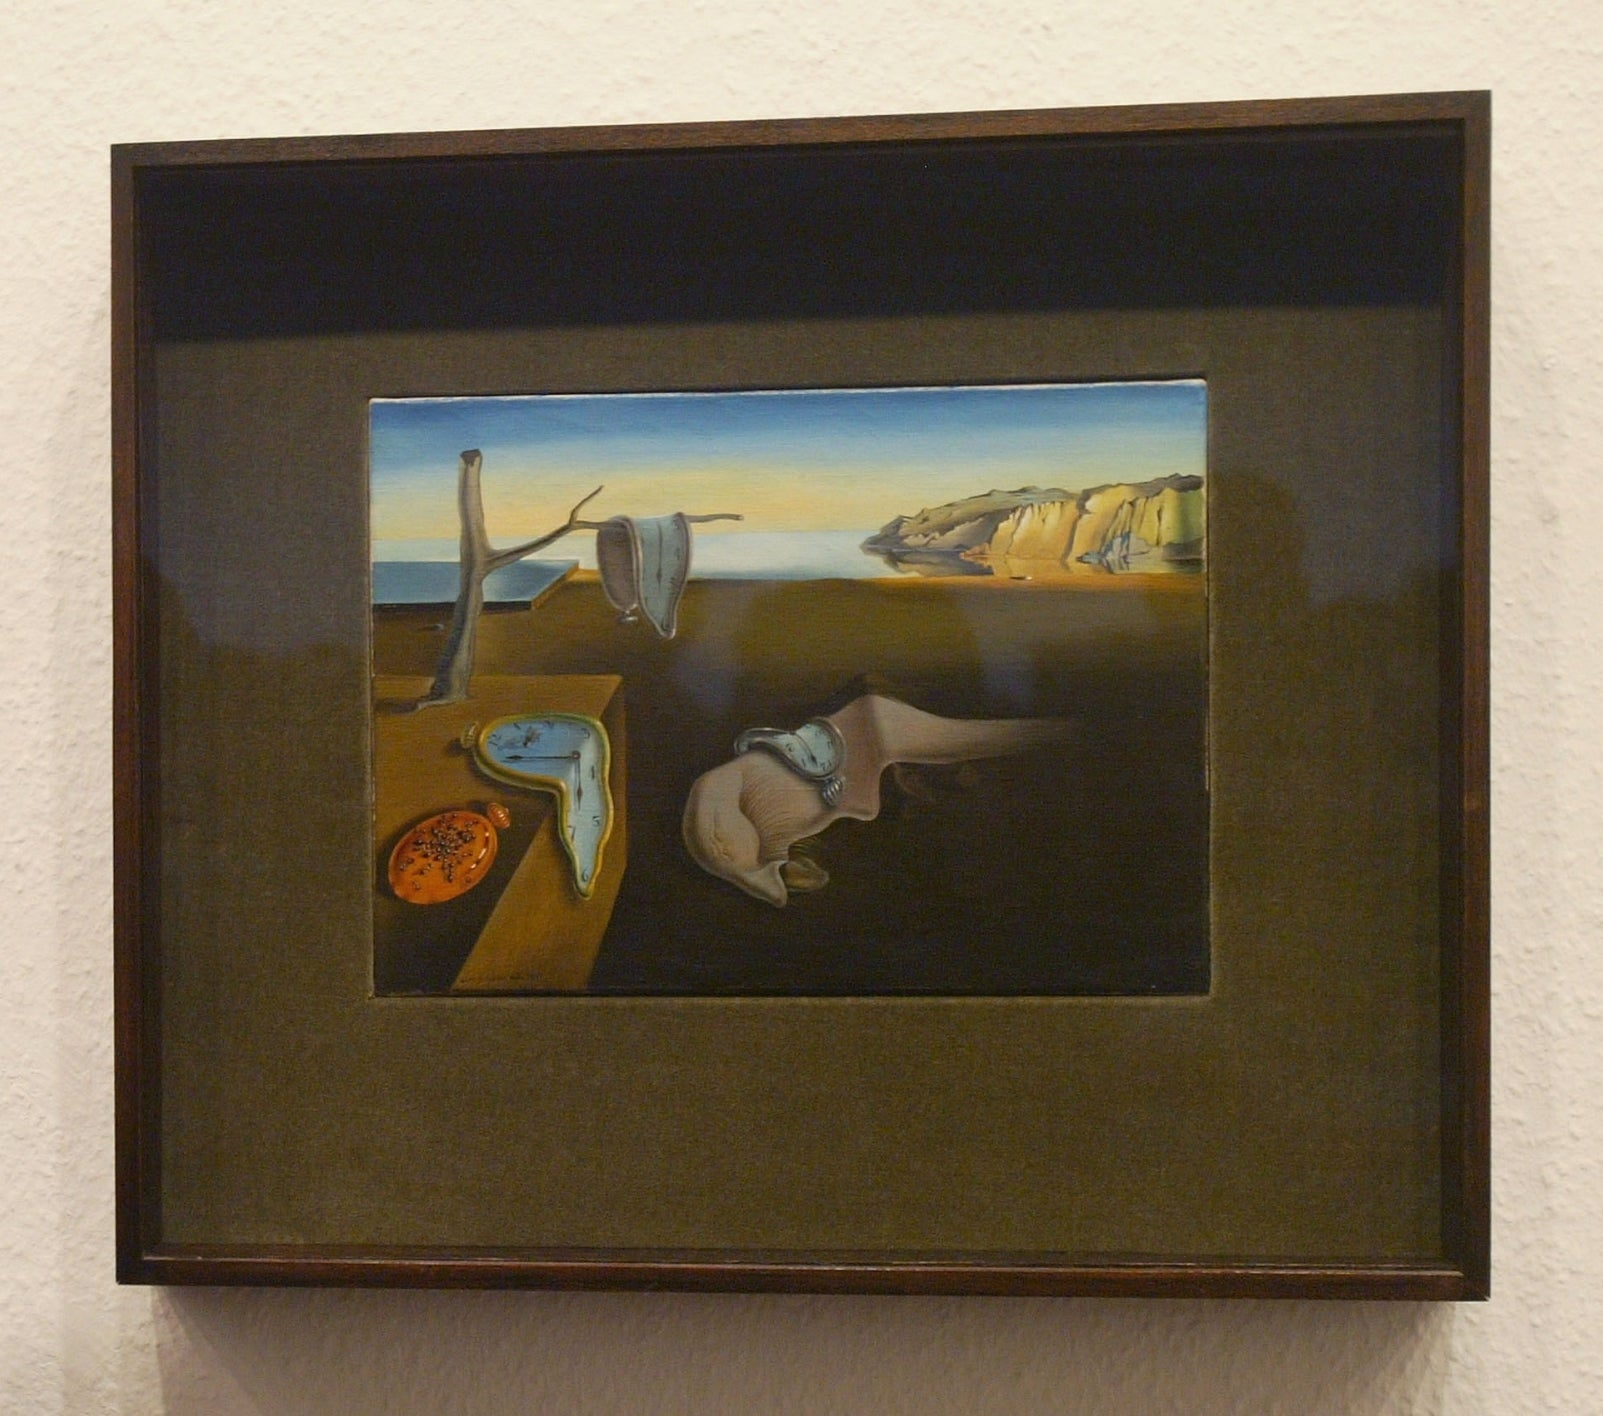 Salvador Dal's The Persistence of Memory (1931) at the Museum of Modern Art, New York